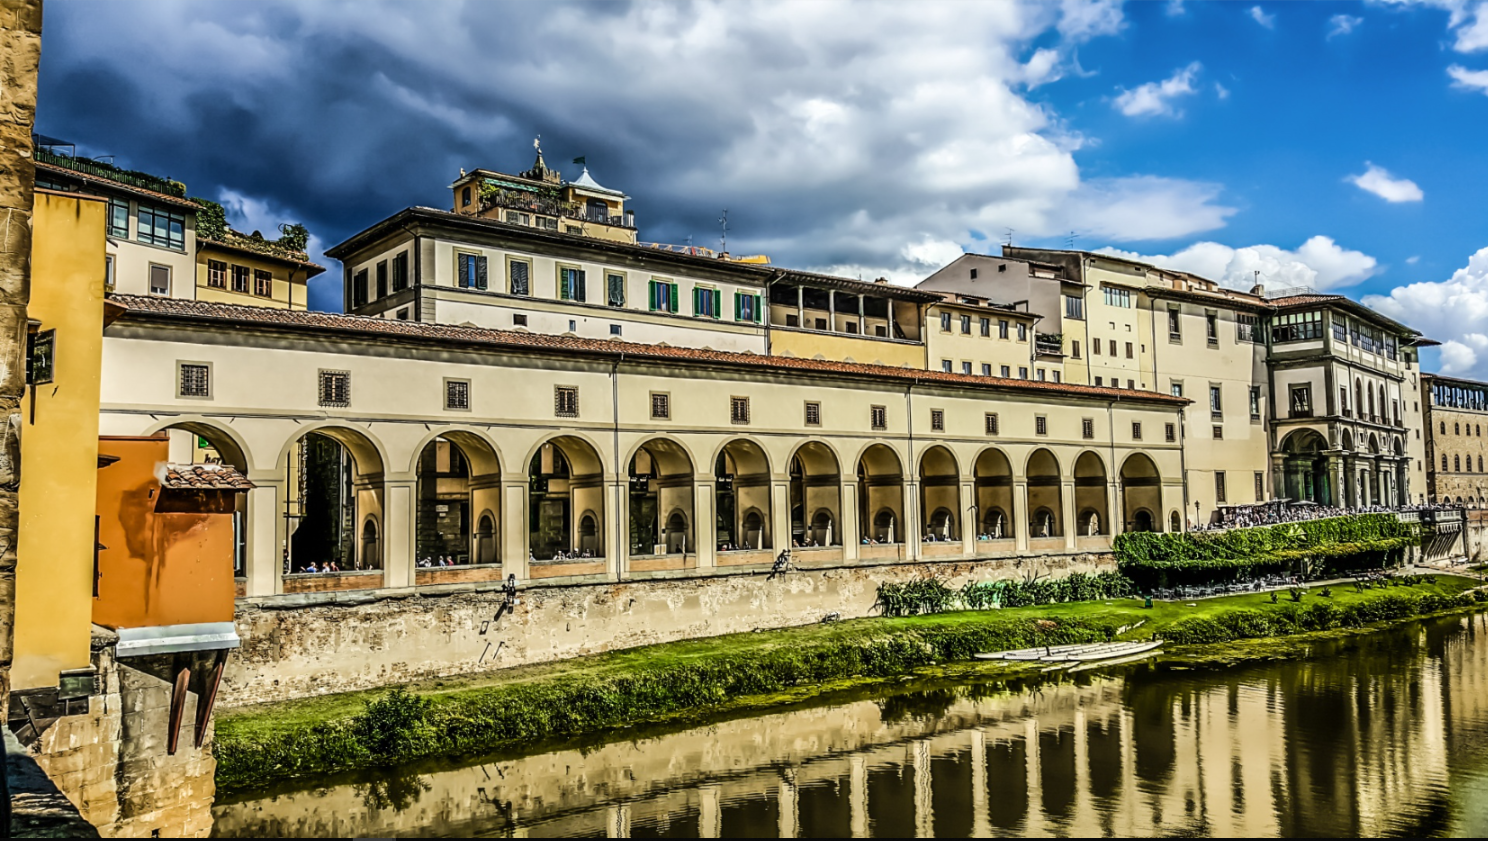 Lovely The Uffizi, from the river.  Courtesy of Wikipedia. No further attribution available.